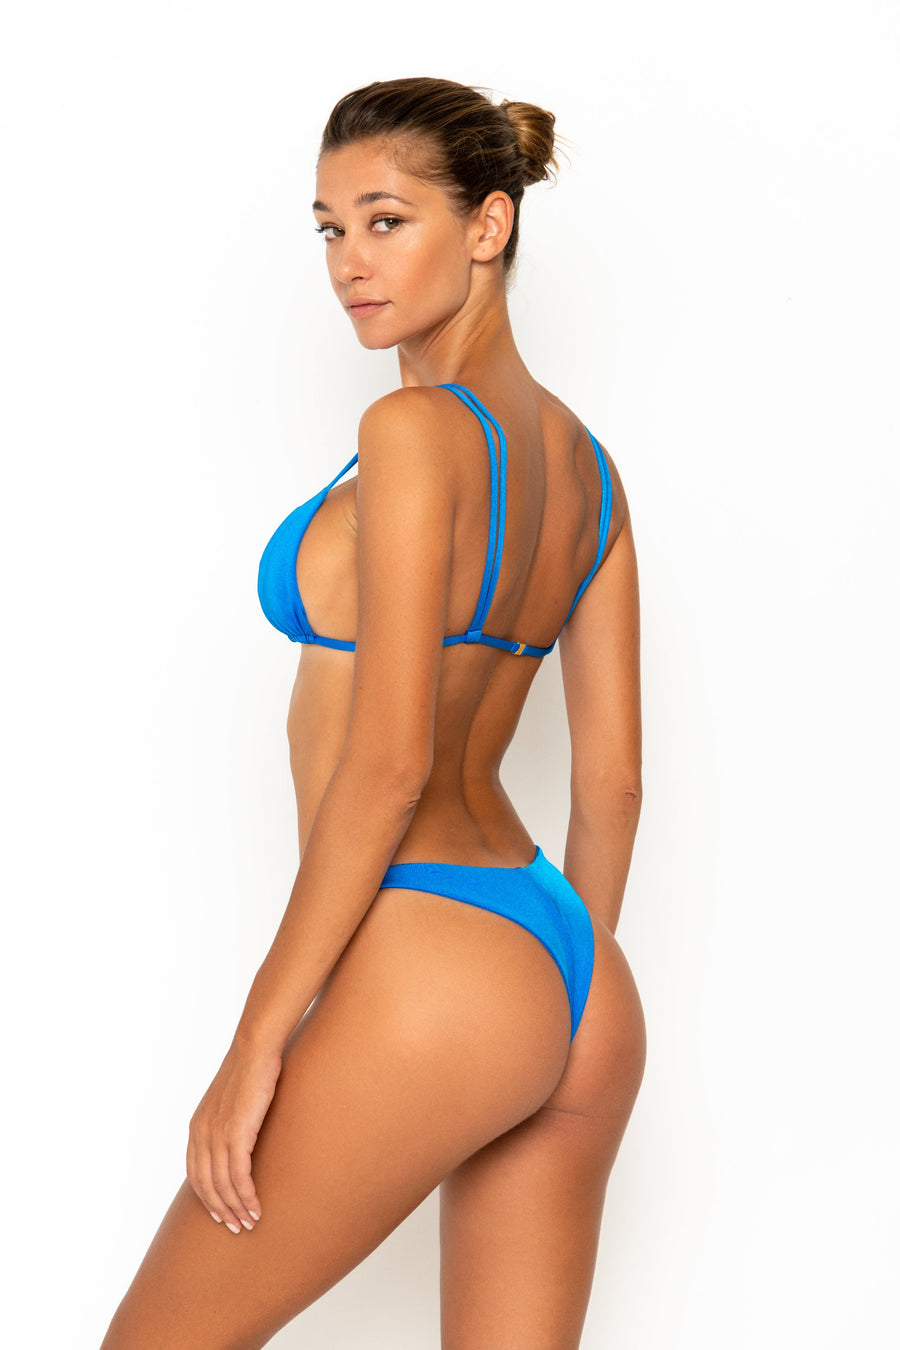 ROCHA Sirius - Cheeky Bikini Bottoms by Sommer Swim, available on sommerswim.com for $69 Kendall Jenner Shorts Exact Product